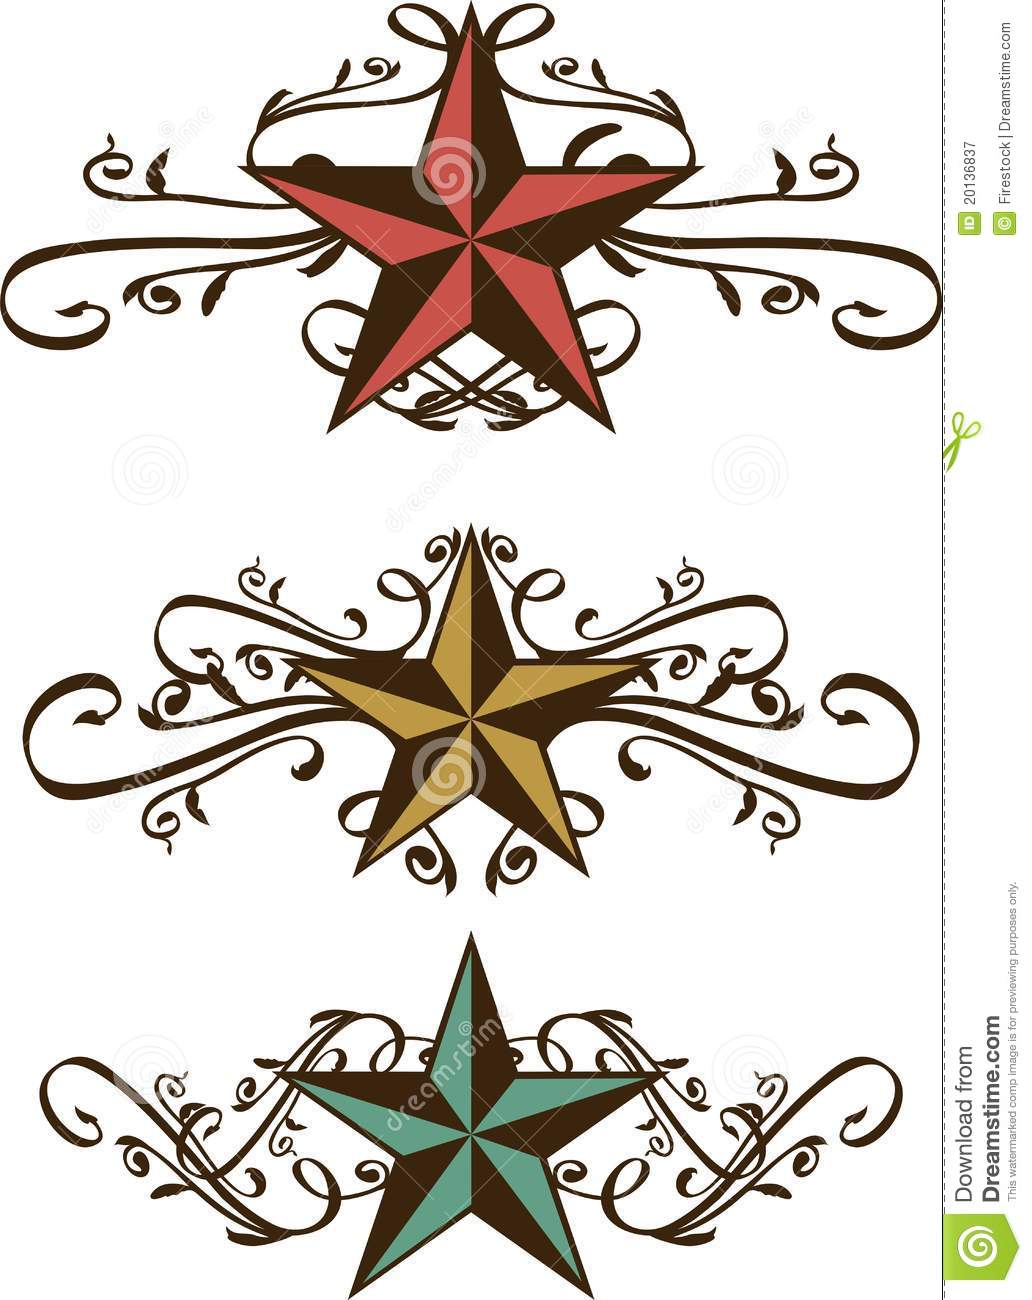 Swirl clipart western With stars  vintage ornate